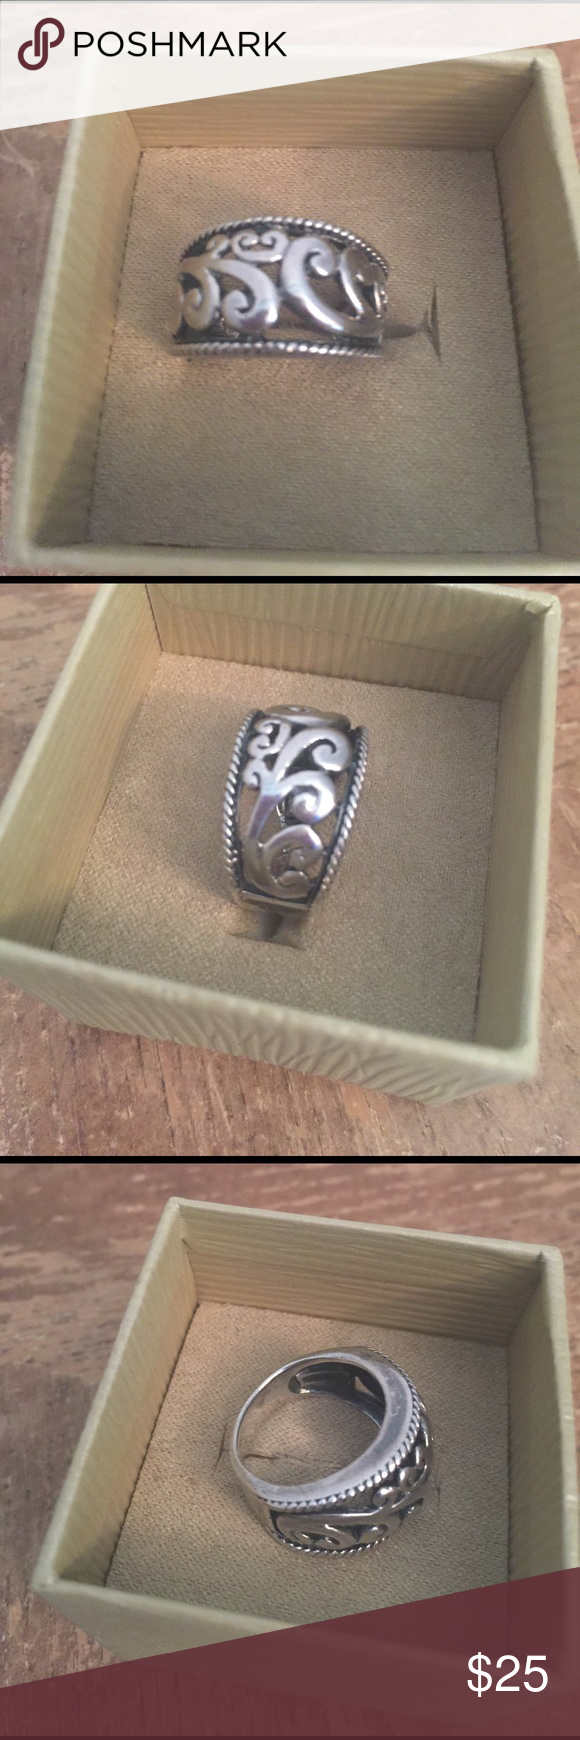 🌺Ring Sterling silver solid 925 Vintage size 6🌺 🌺Ring Sterling silver solid 925 Vintage size 6🌺 Jewelry Rings